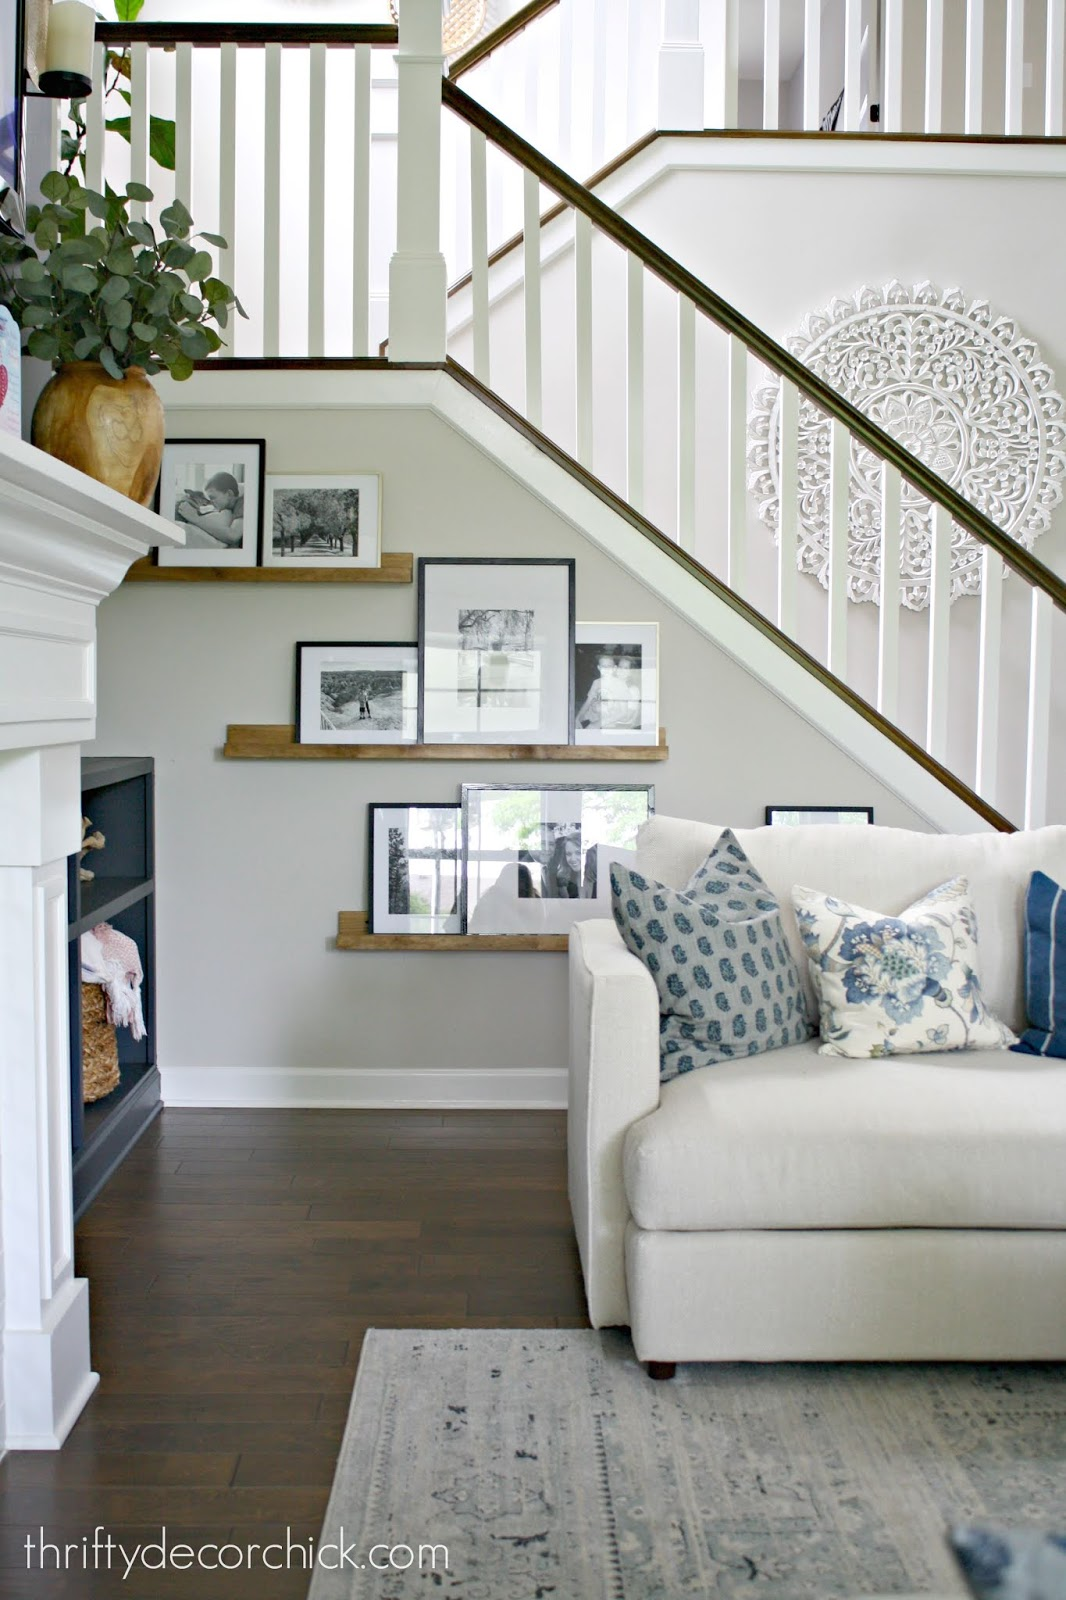 DIY picture ledges under stairs